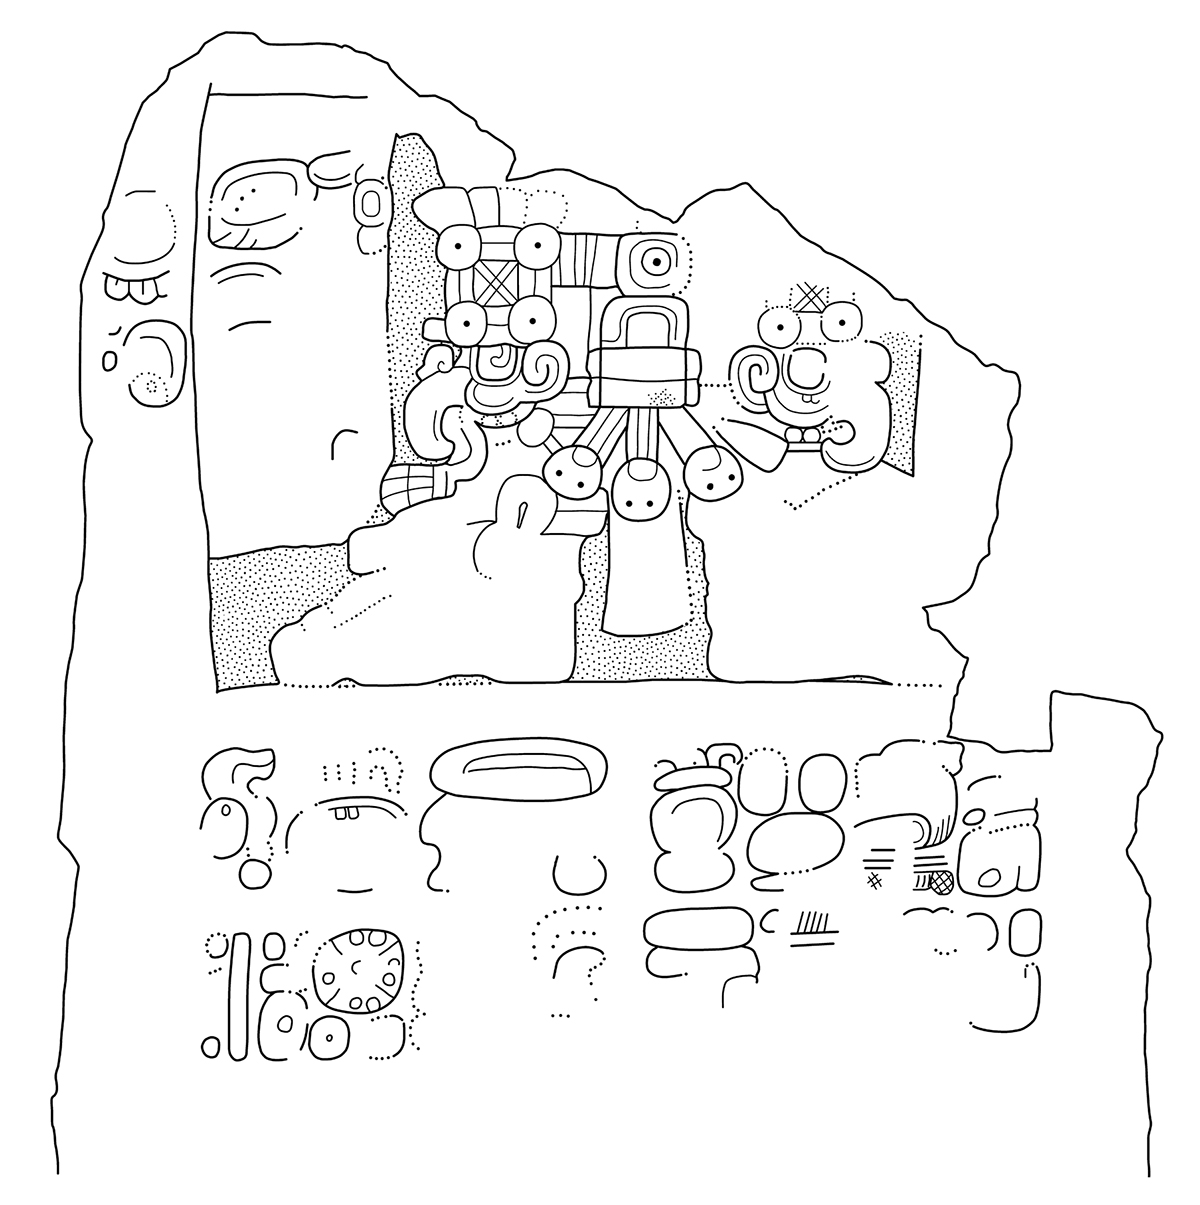 Drawing of mayan glyph